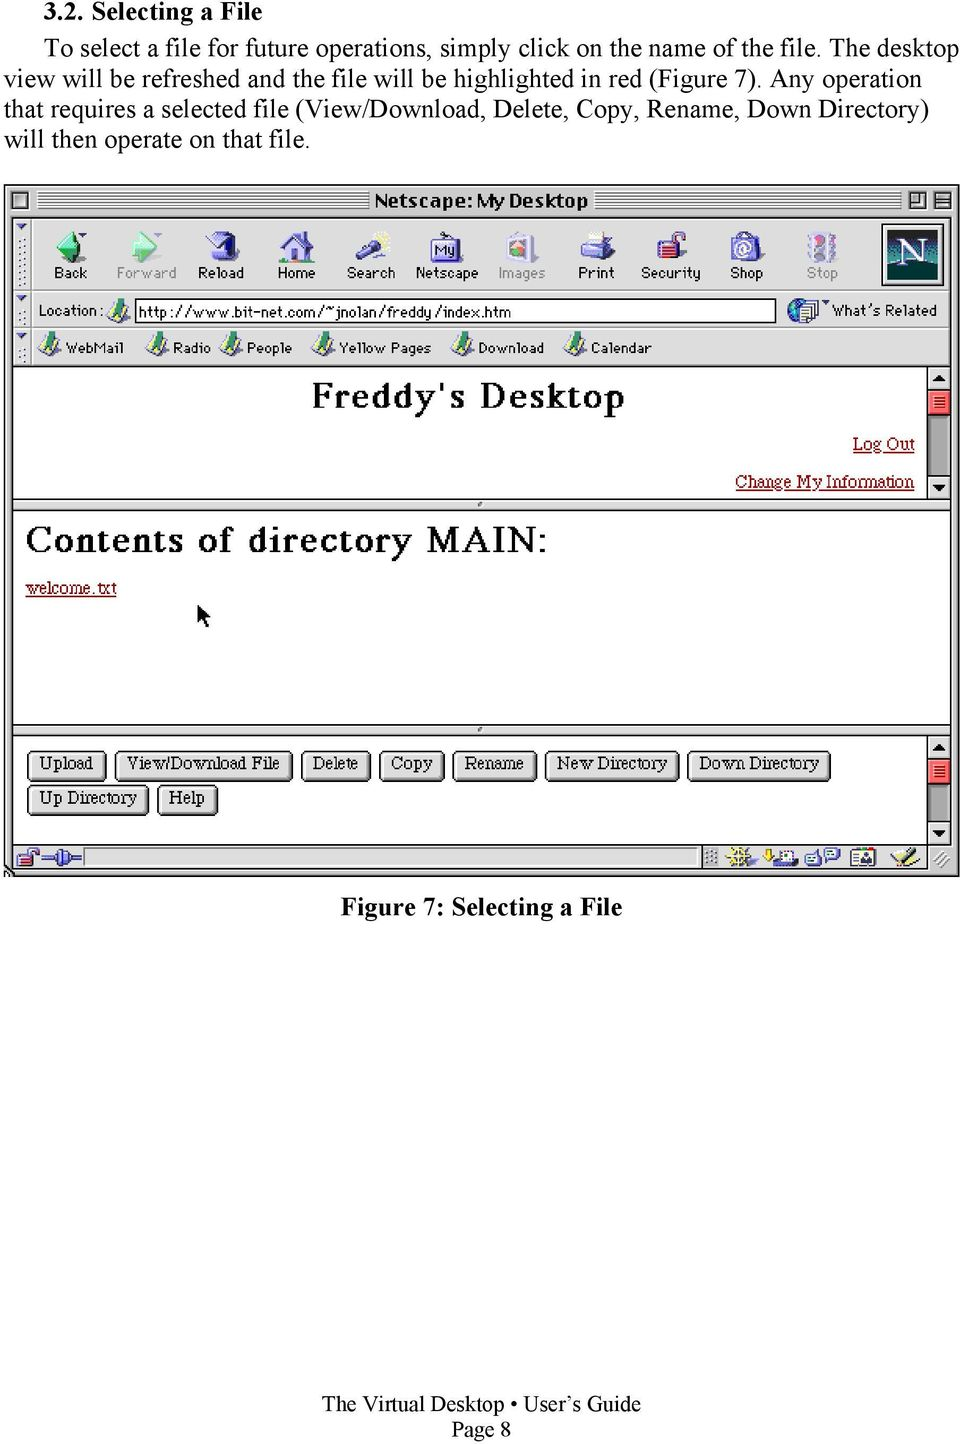 The desktop view will be refreshed and the file will be highlighted in red (Figure 7).